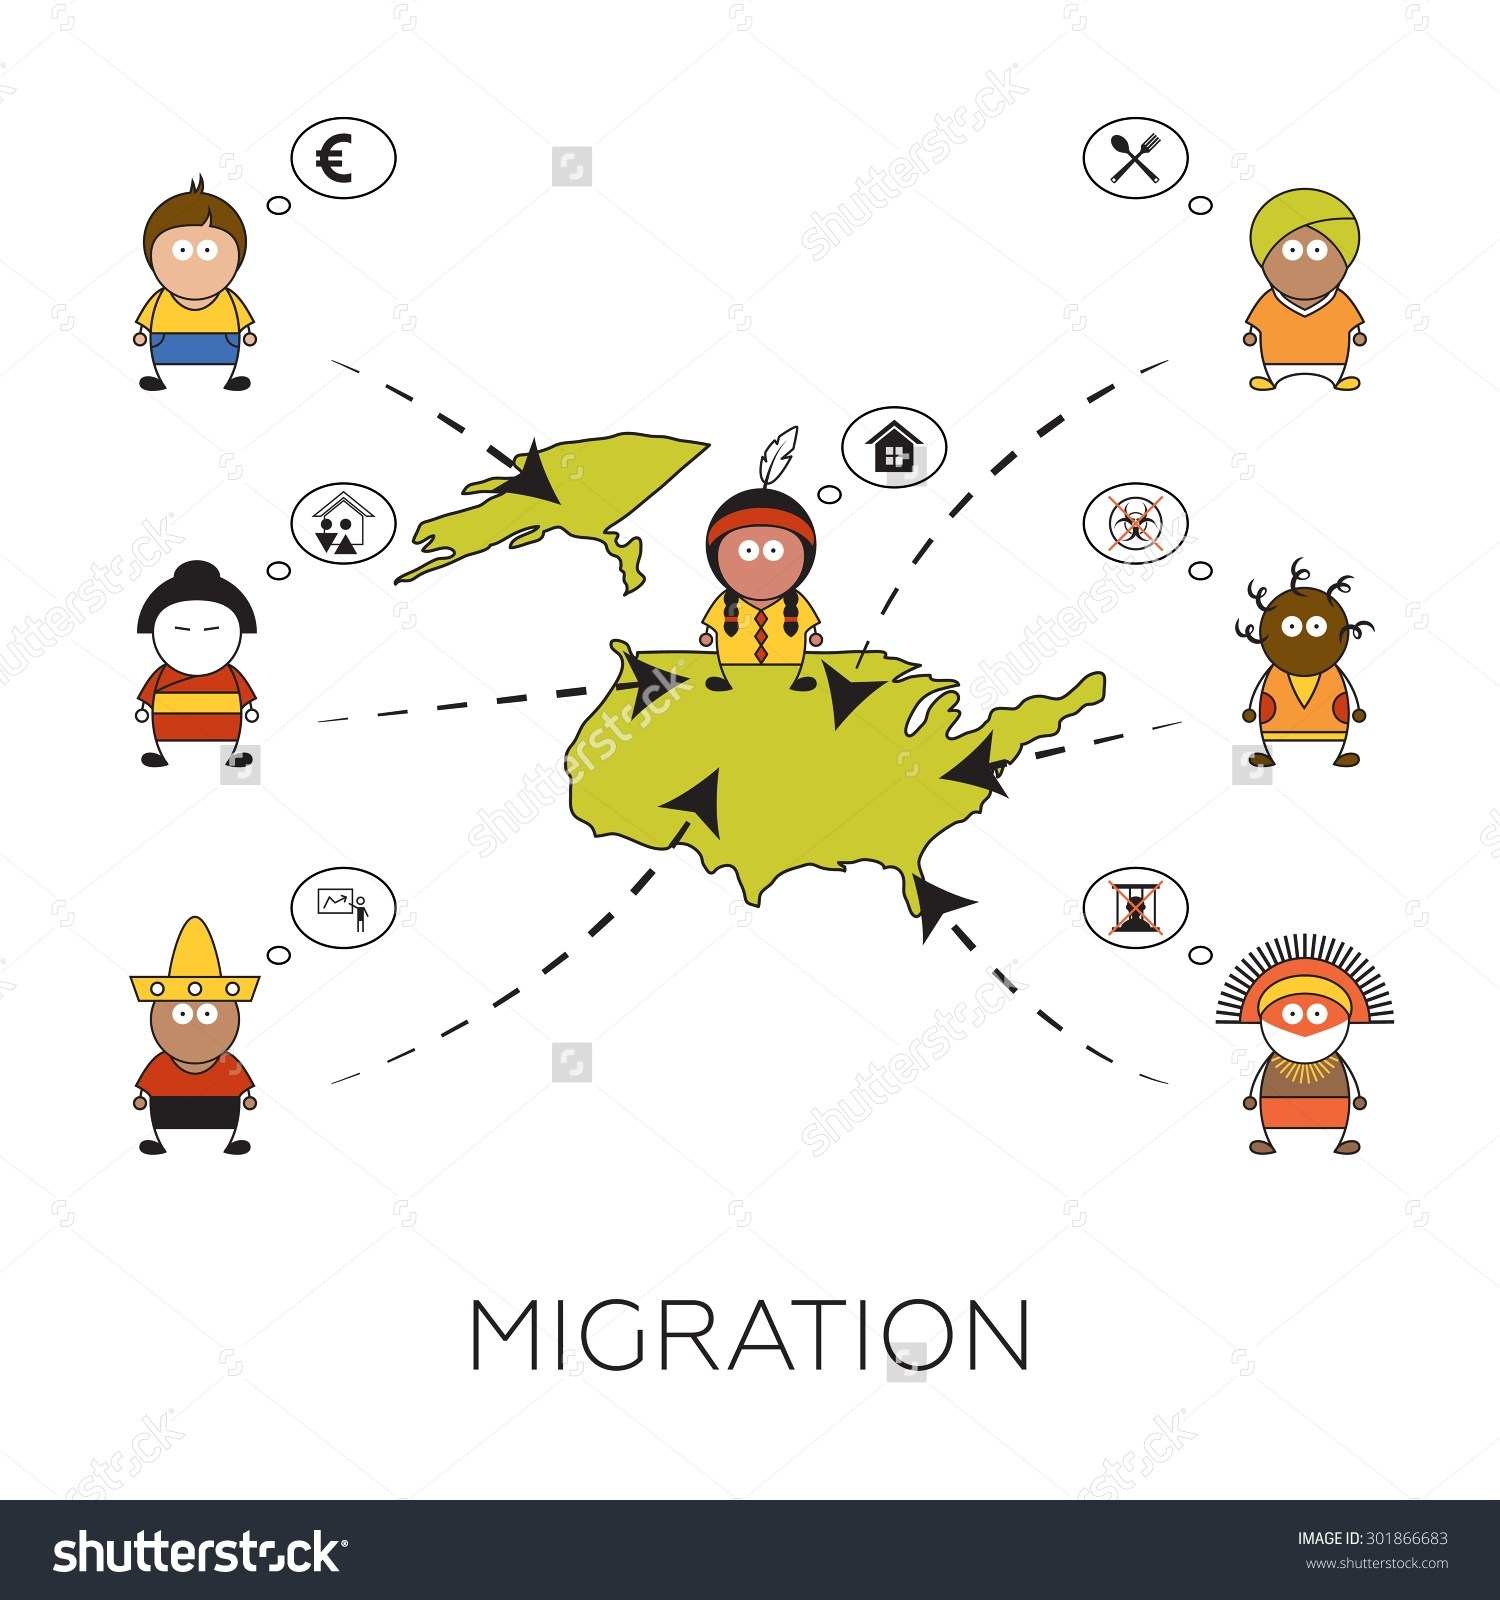 Migration of people clipart 6 » Clipart Portal.